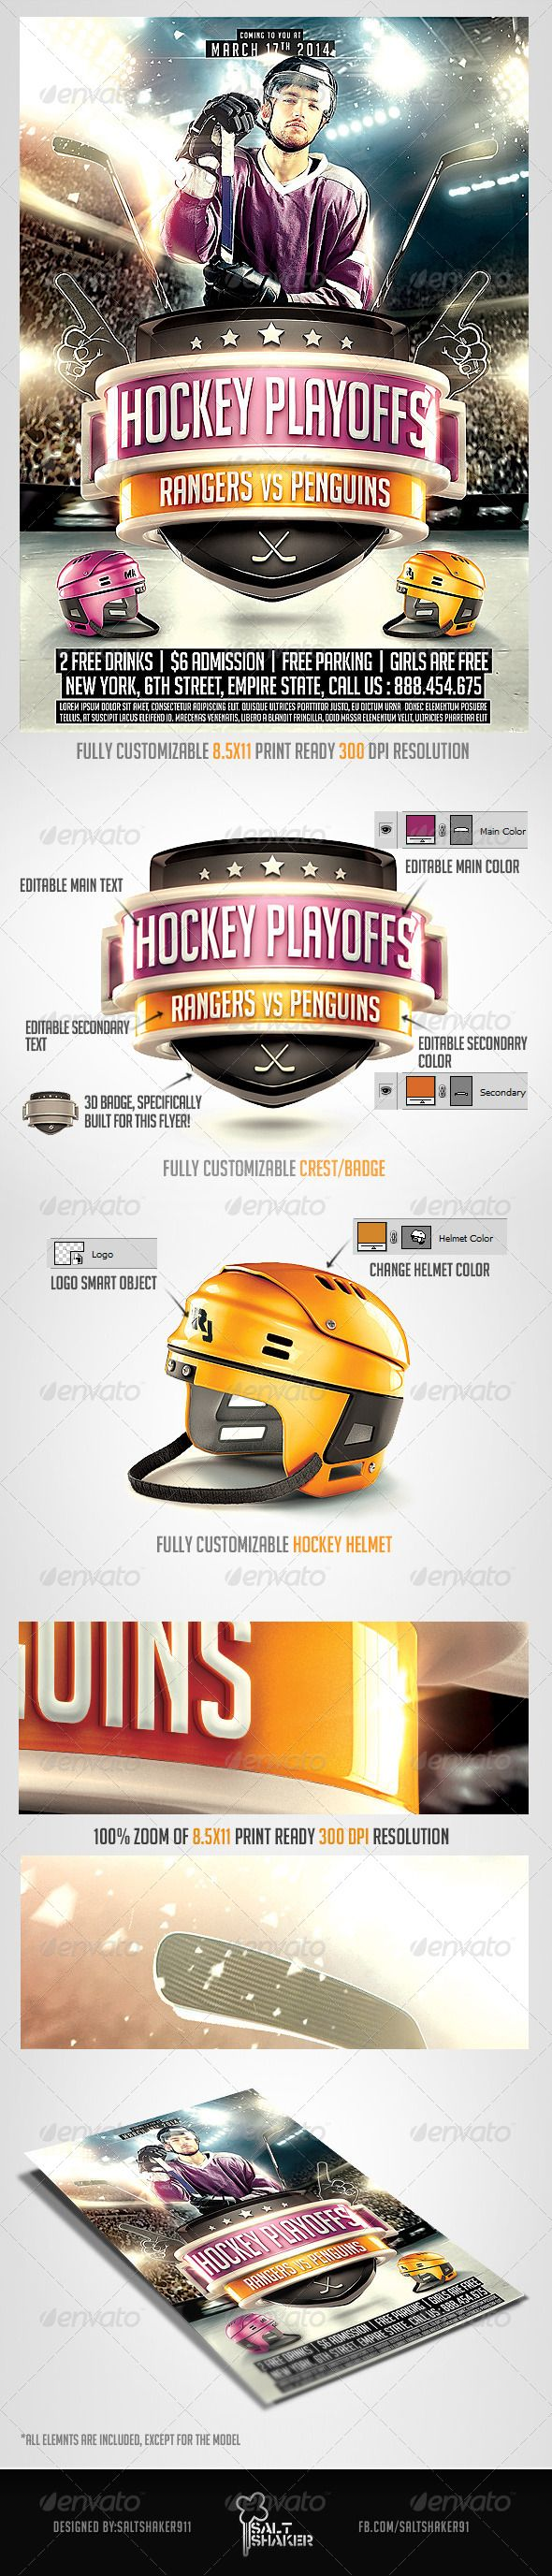 Hockey Playoffs Flyer template — Photoshop PSD #hockey player #helmet • Available here → https://graphicriver.net/item/hockey-playoffs-flyer-template/7167664?ref=pxcr